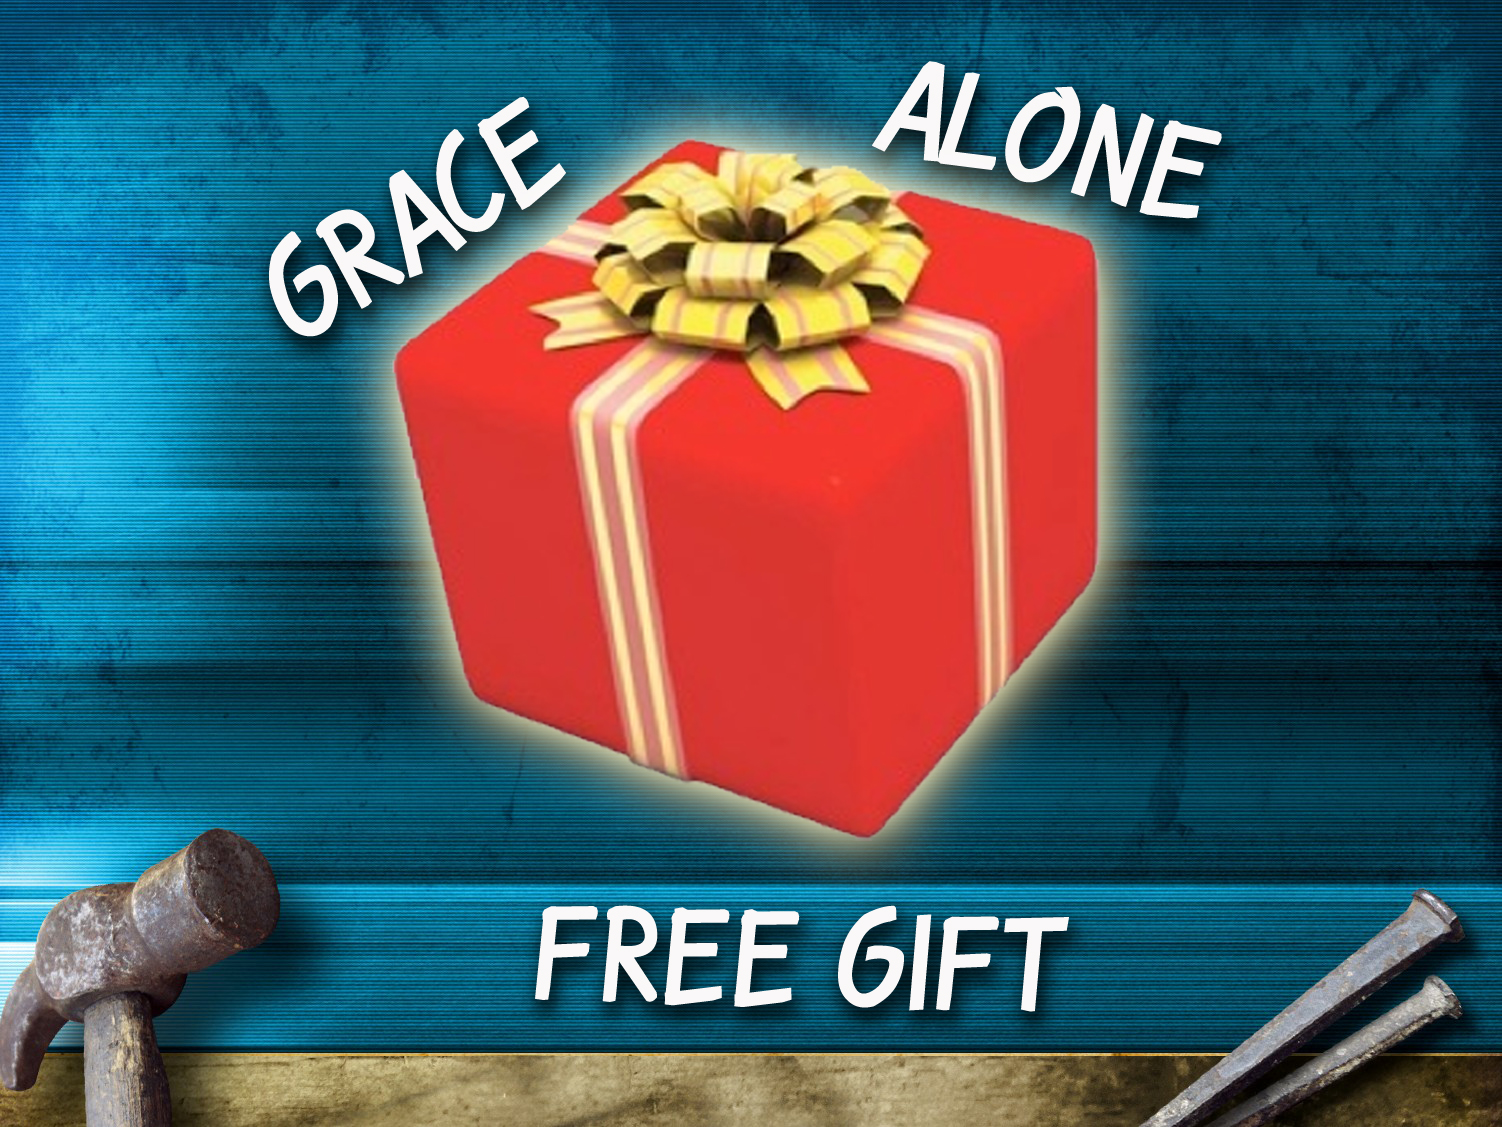 Gratis datingside for gift mann